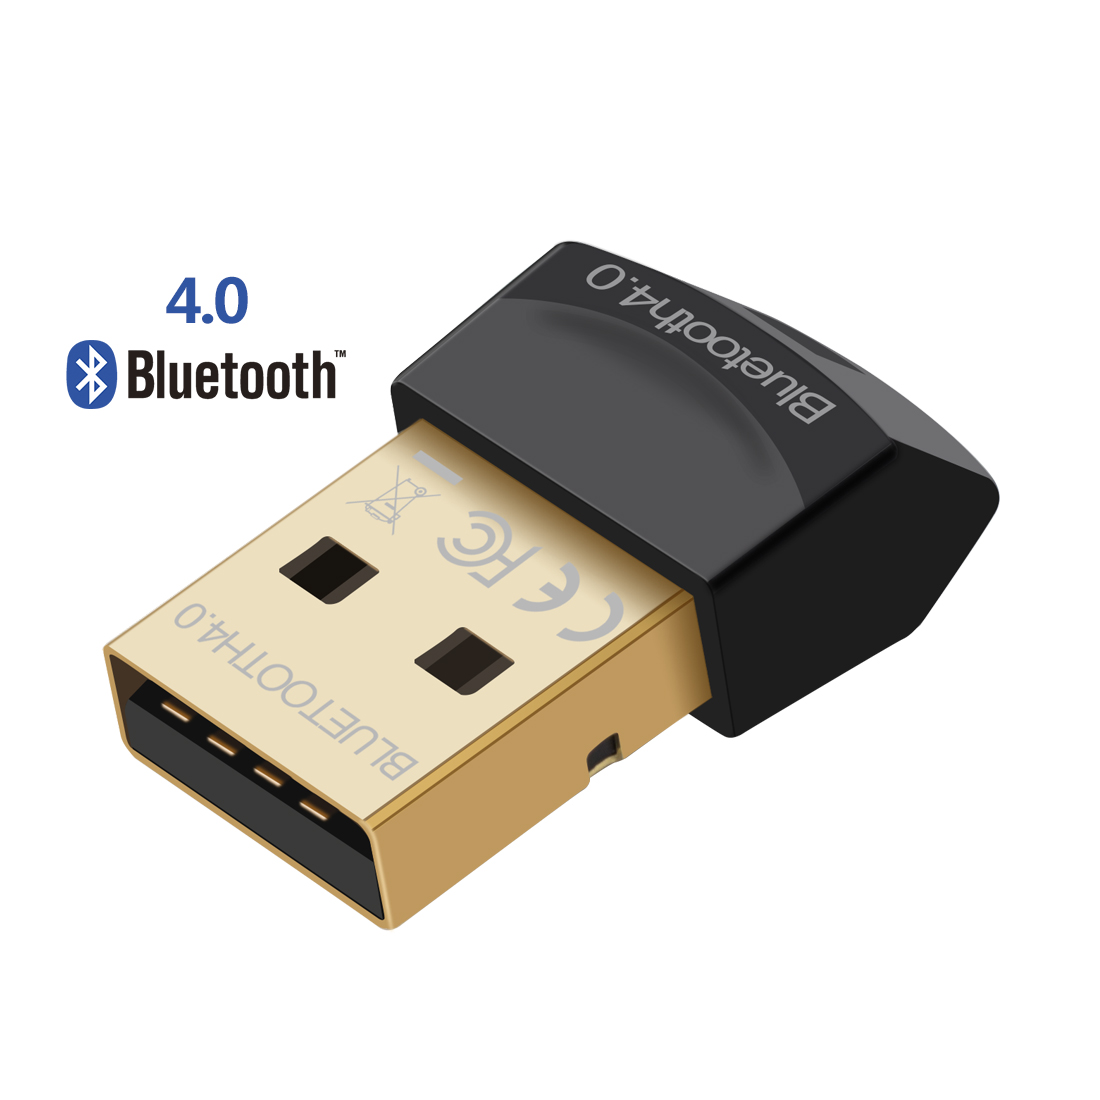 Mini USB Bluetooth Adapter V4.0 CSR Drahtlose Bluetooth Dongle 4,0 Sender Für Computer PC Laptop Windows 10 8 7 Vista XP